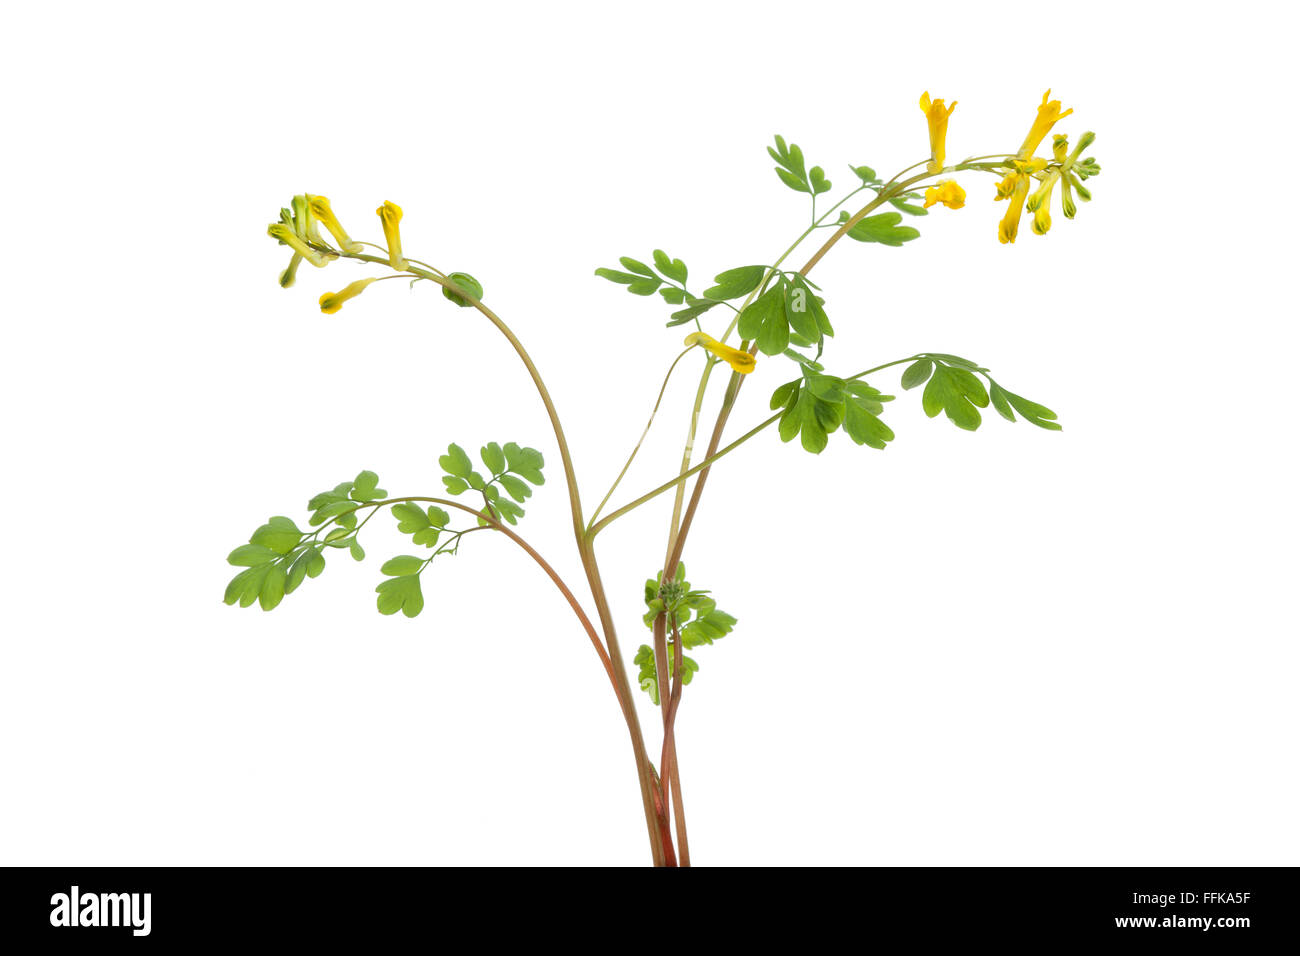 Twig of fresh flowering Rue at white background - Stock Image